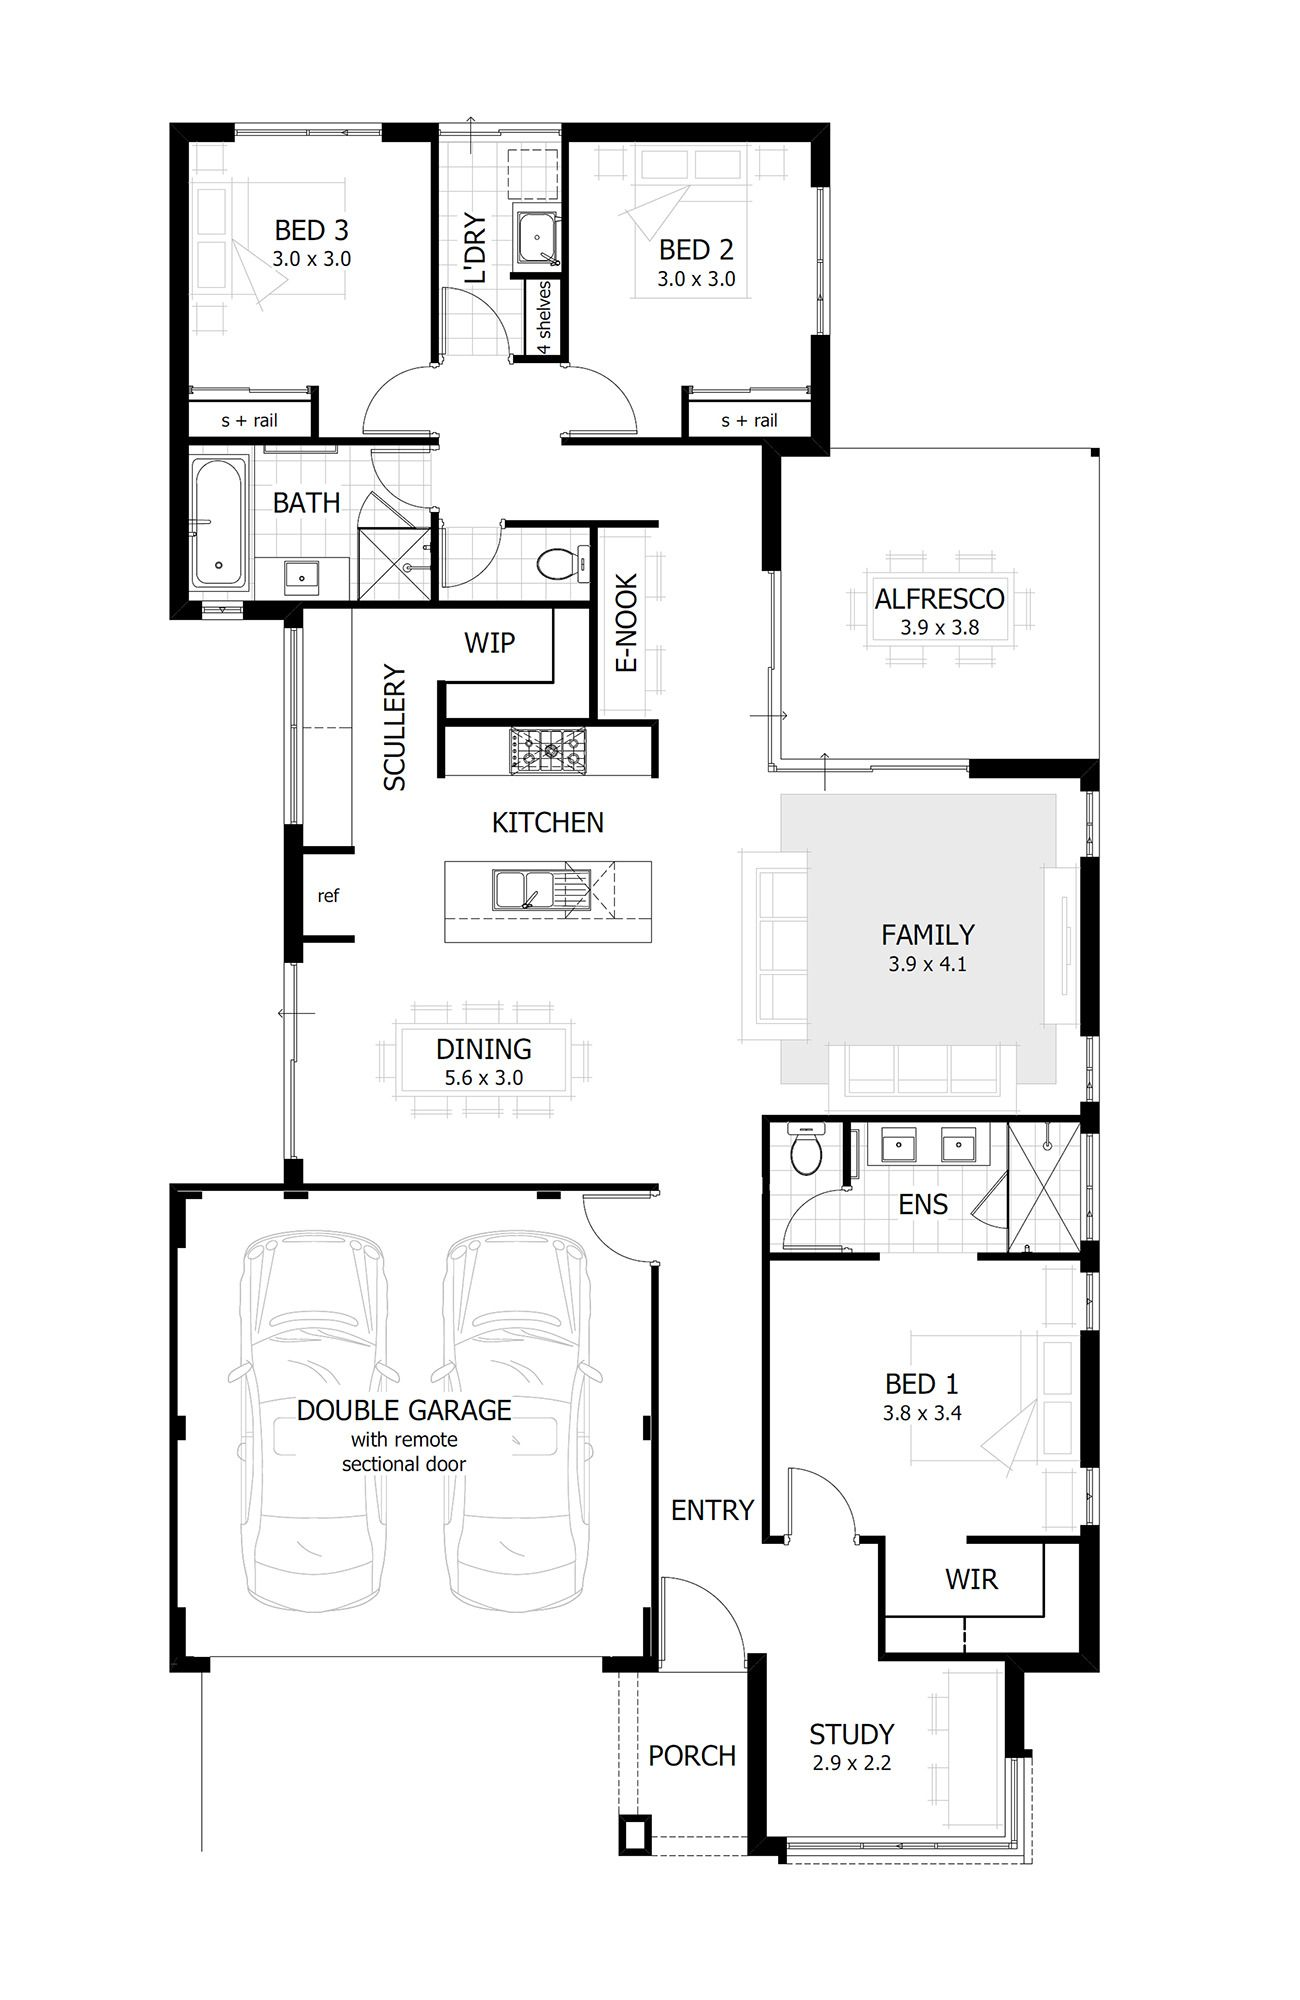 House Floor Plan Design Software Free Download 2020 In 2020 Floor Plans House Floor Plans Bedroom House Plans